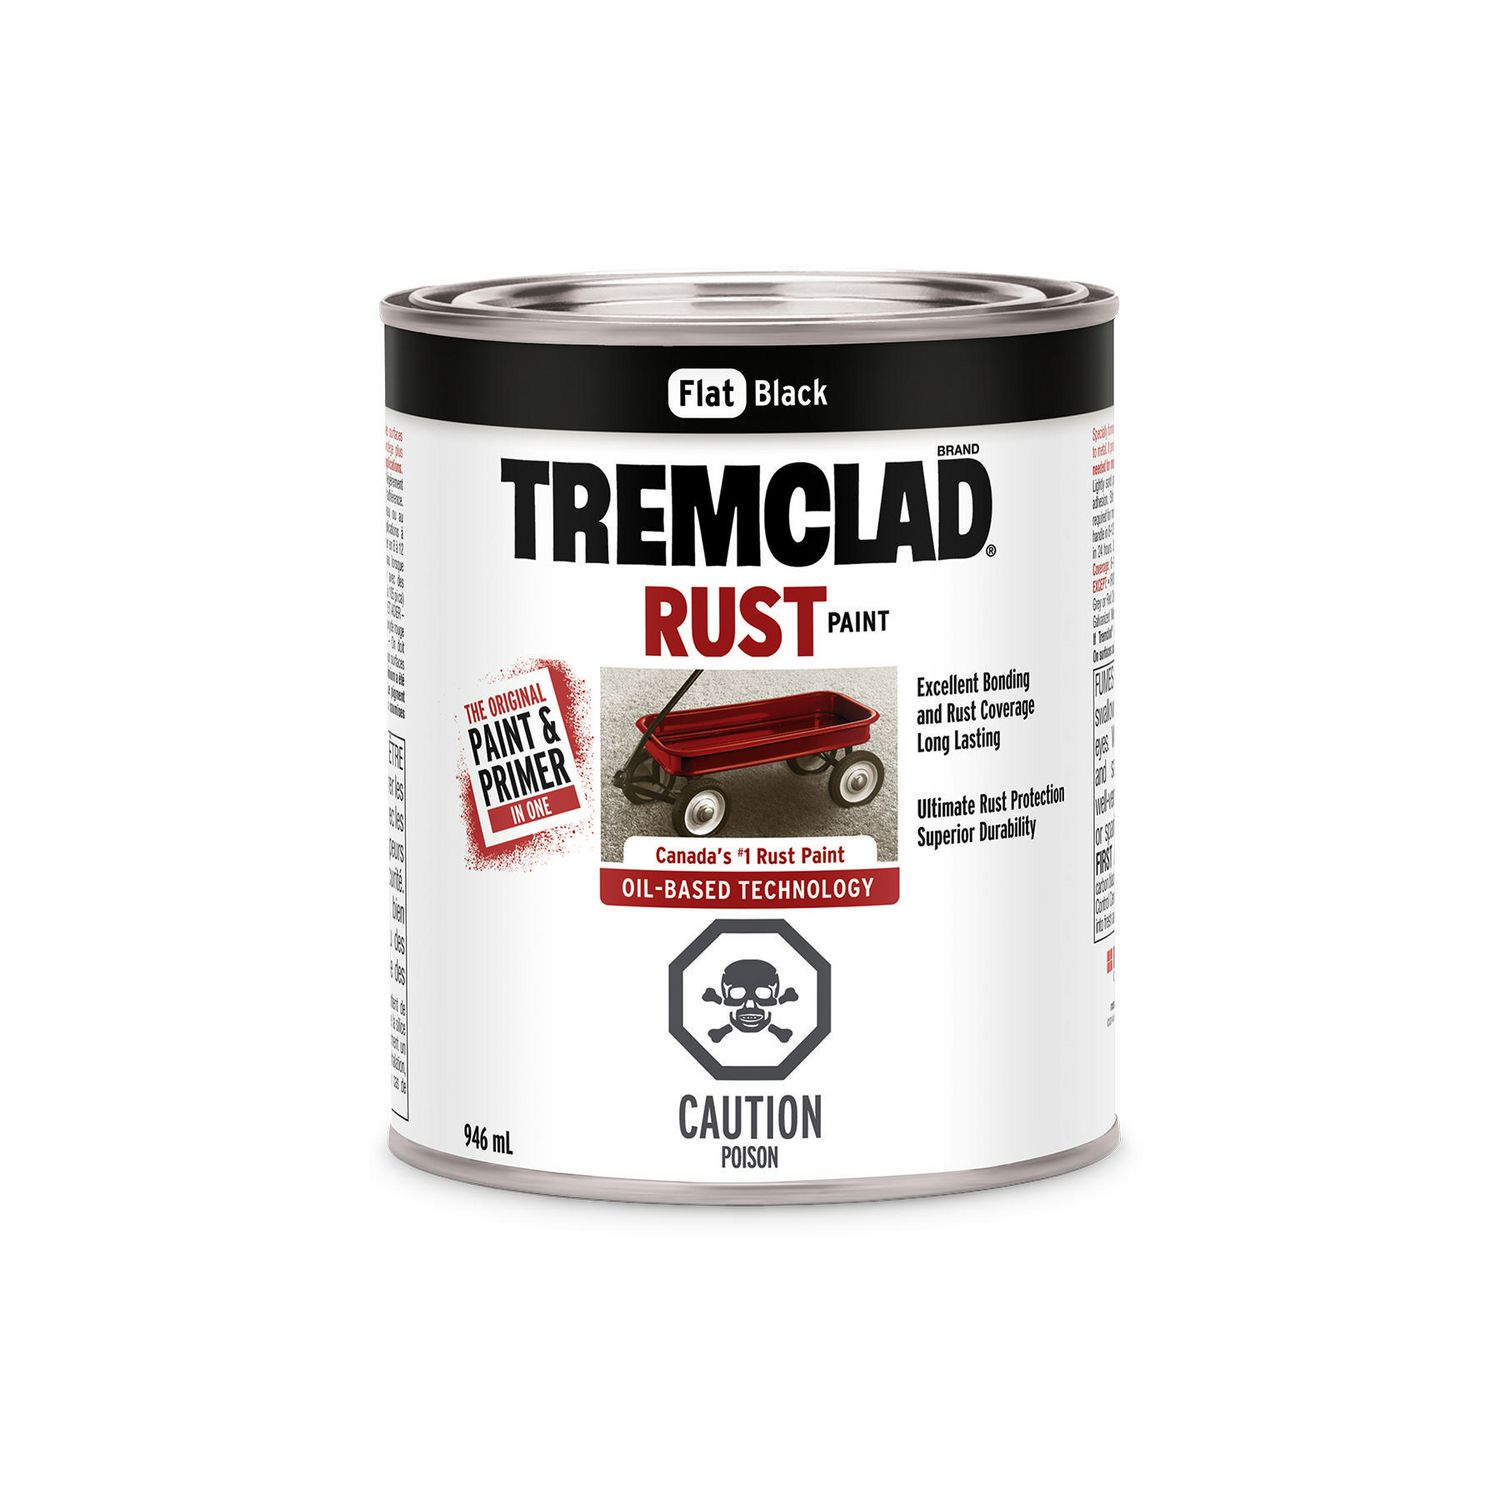 Tremclad Flat Black Rust Paint